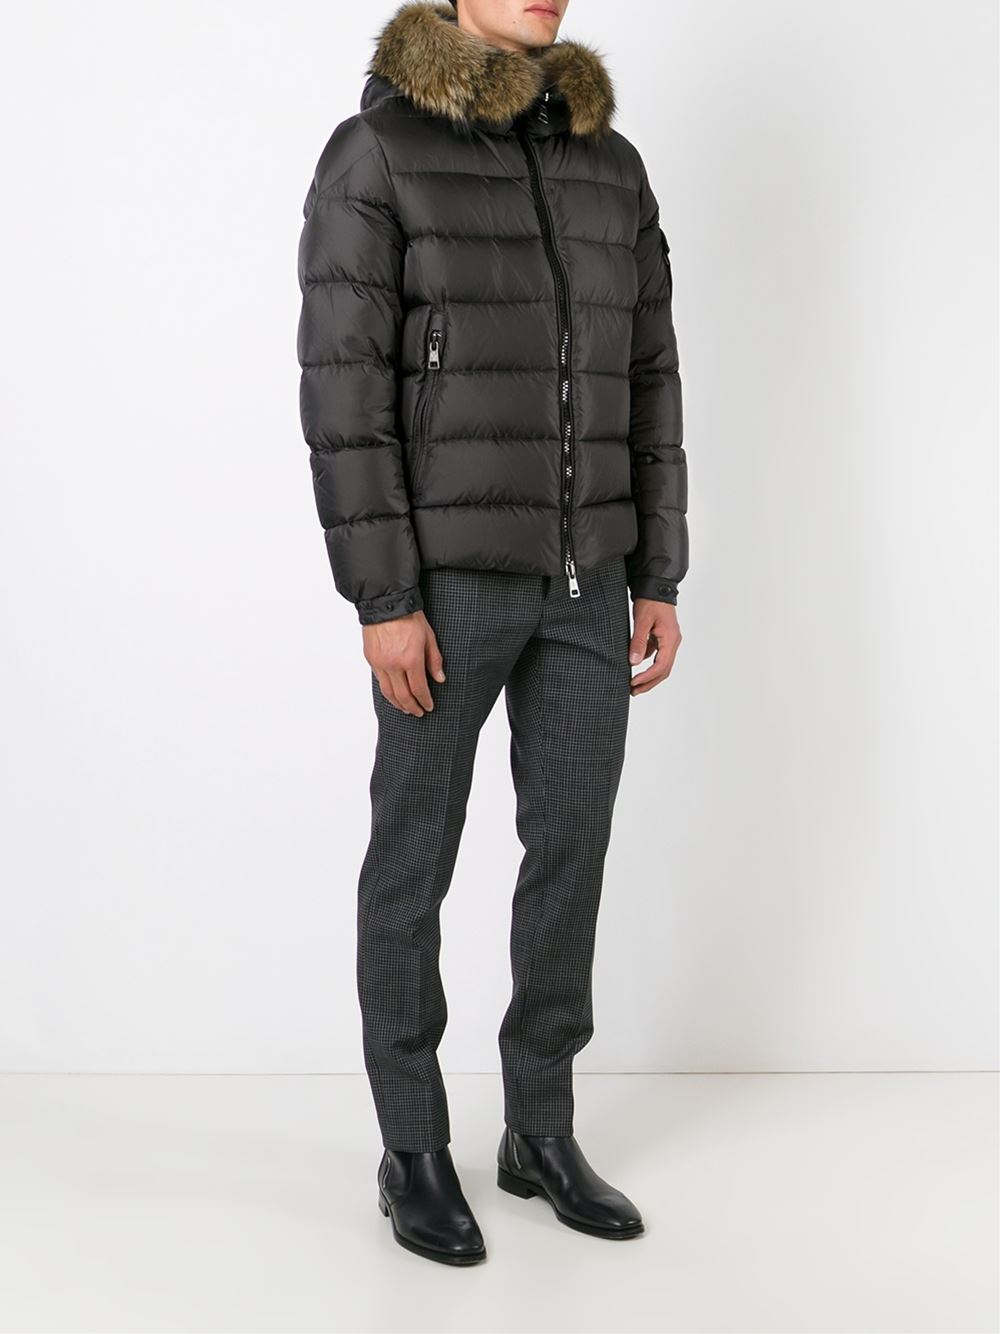 Moncler Fur Trim Padded Jacket In Black For Men Lyst